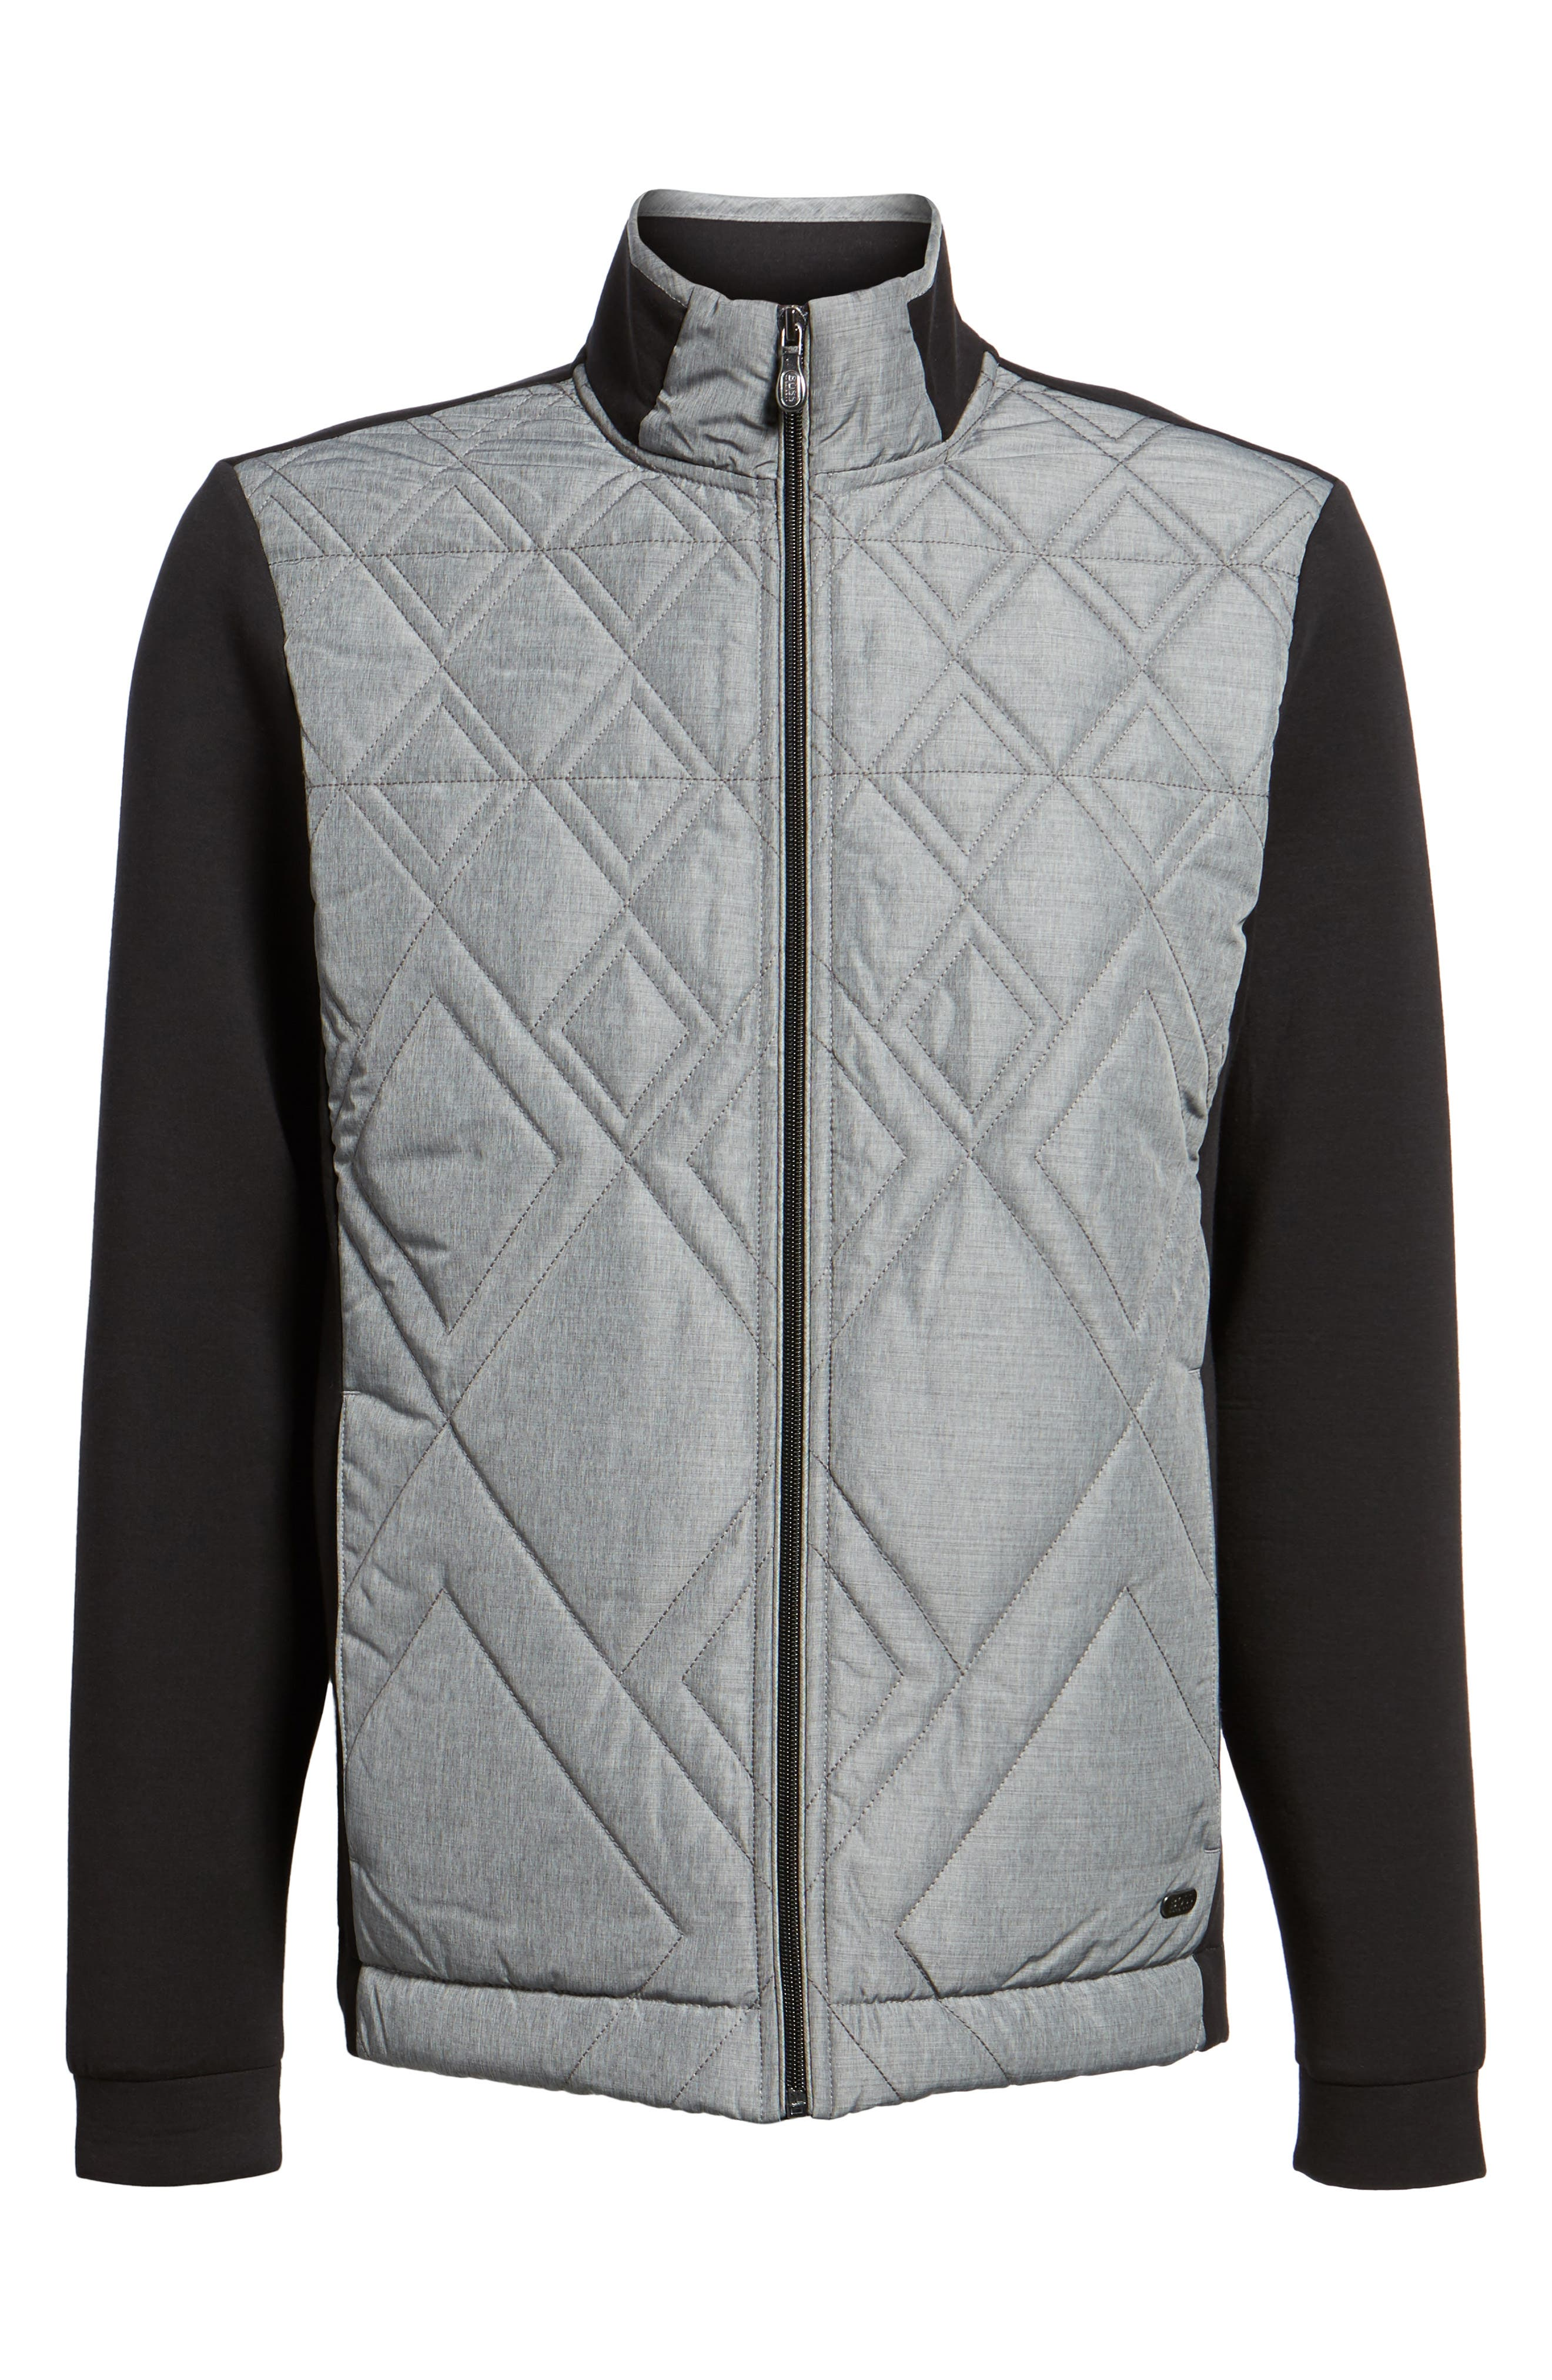 C-Pizzoli Quilted Jacket,                             Alternate thumbnail 5, color,                             001